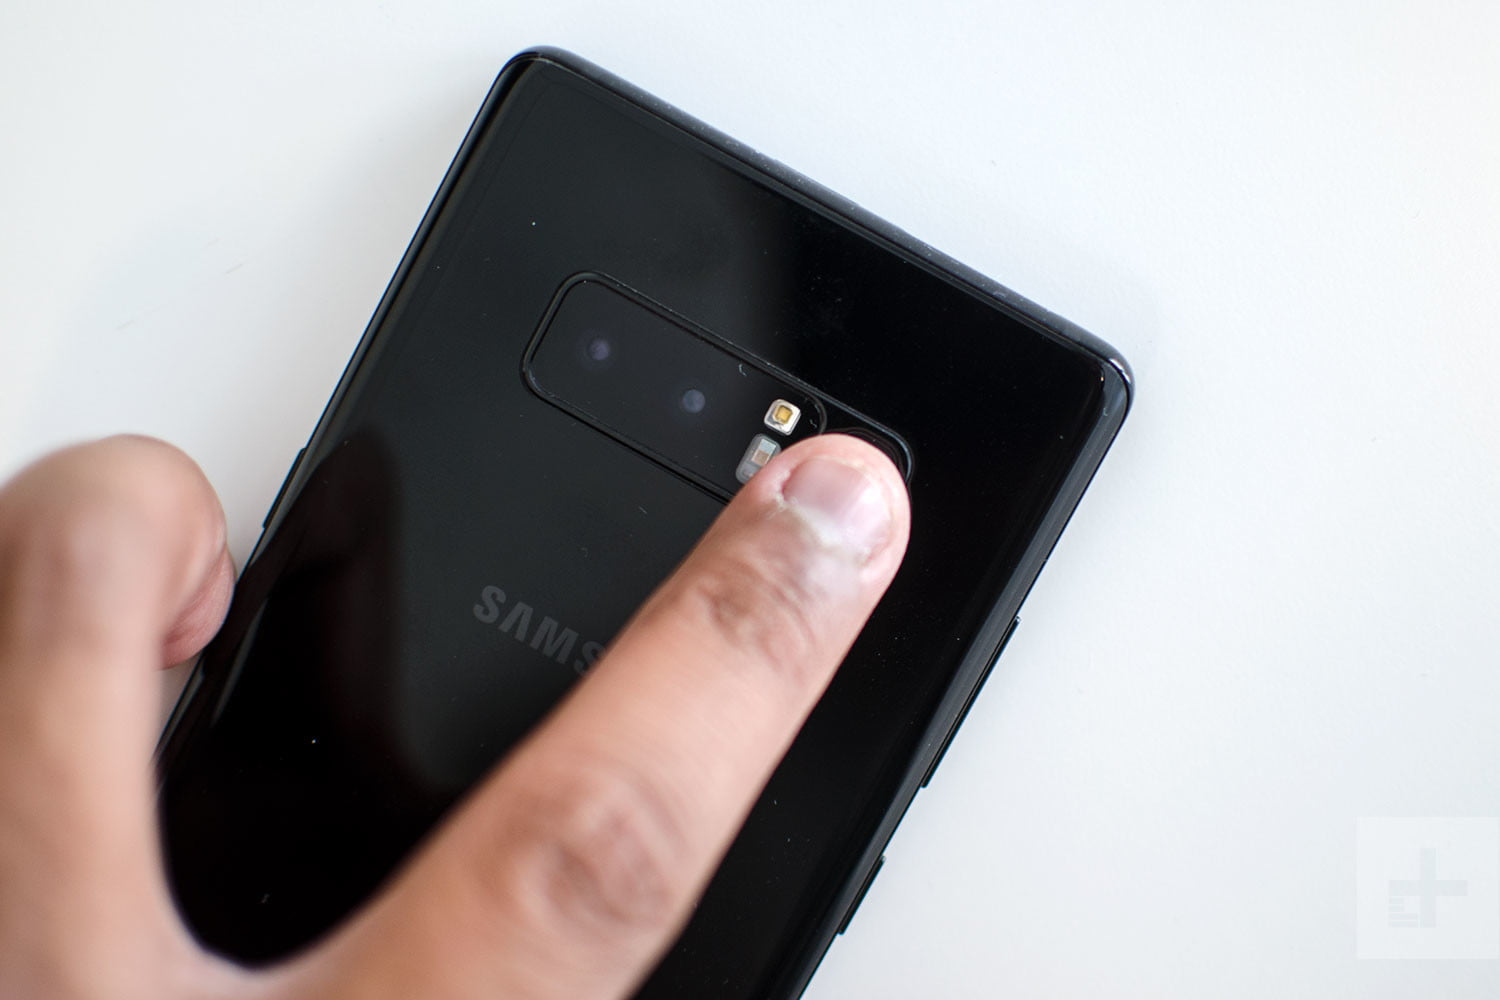 The best samsung galaxy note 8 tips and tricks digital trends samsung galaxy note 8 review fingerprint scan baditri Choice Image